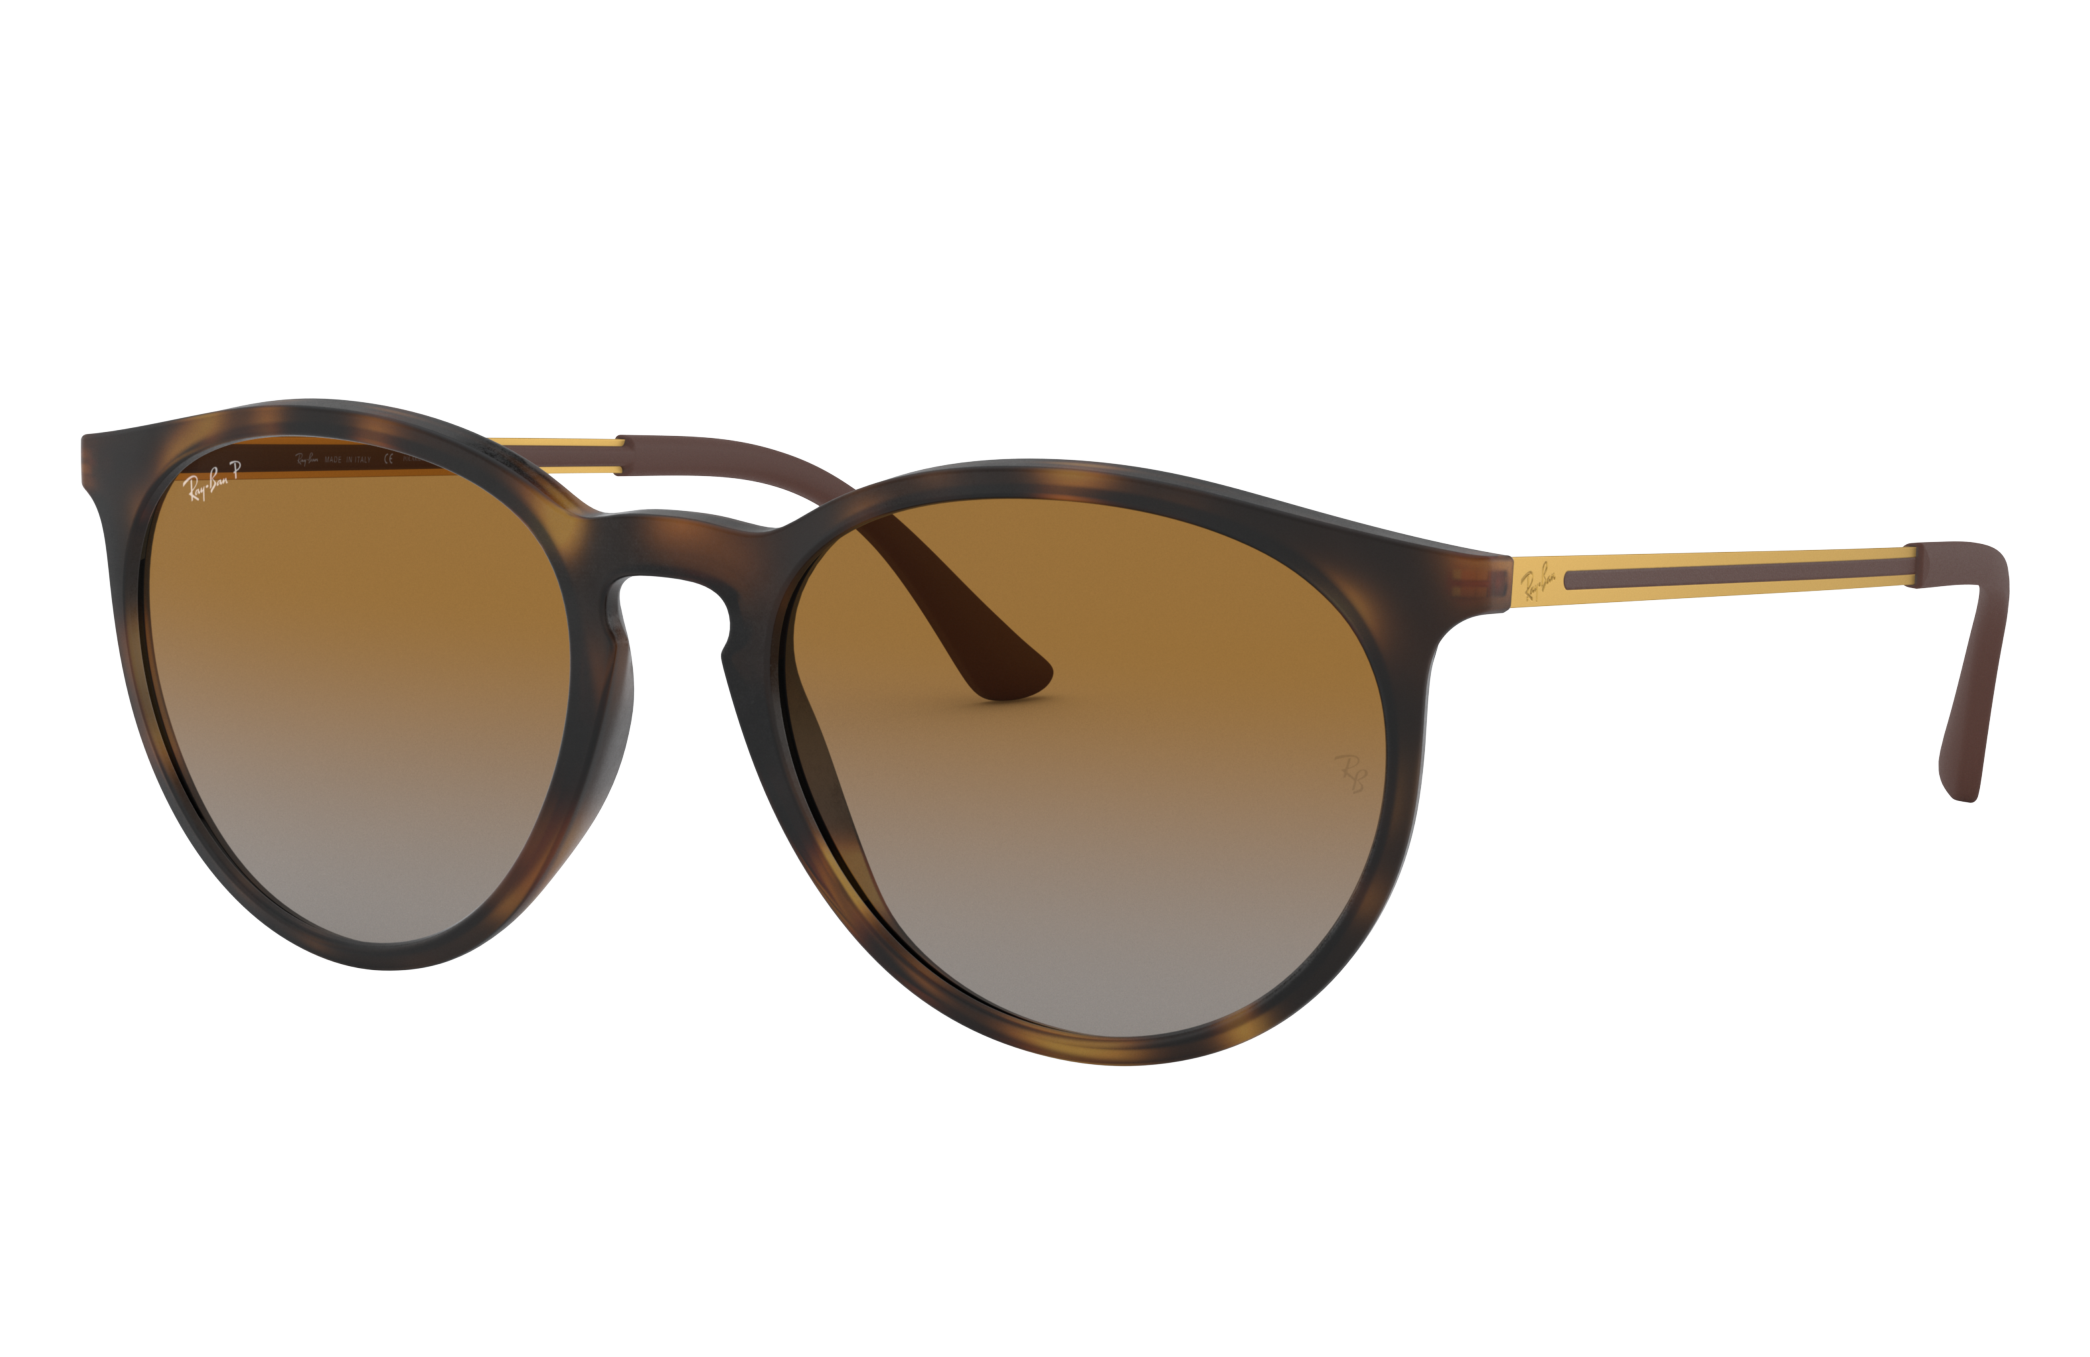 Ray-Ban Rb4274 Gold, Polarized Brown Lenses - RB4274